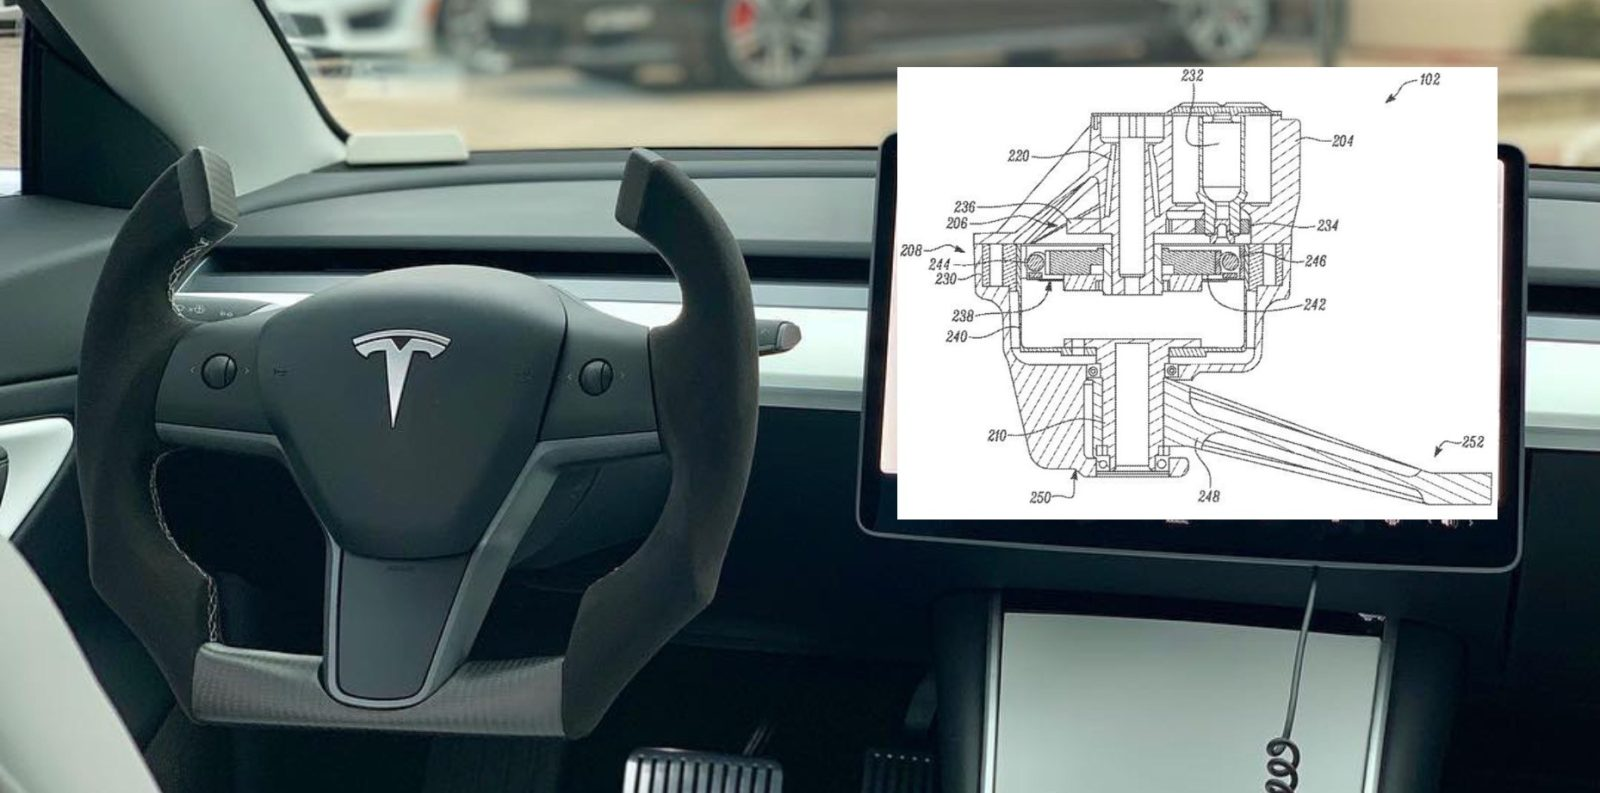 Tesla patents a more efficient power assist steering system